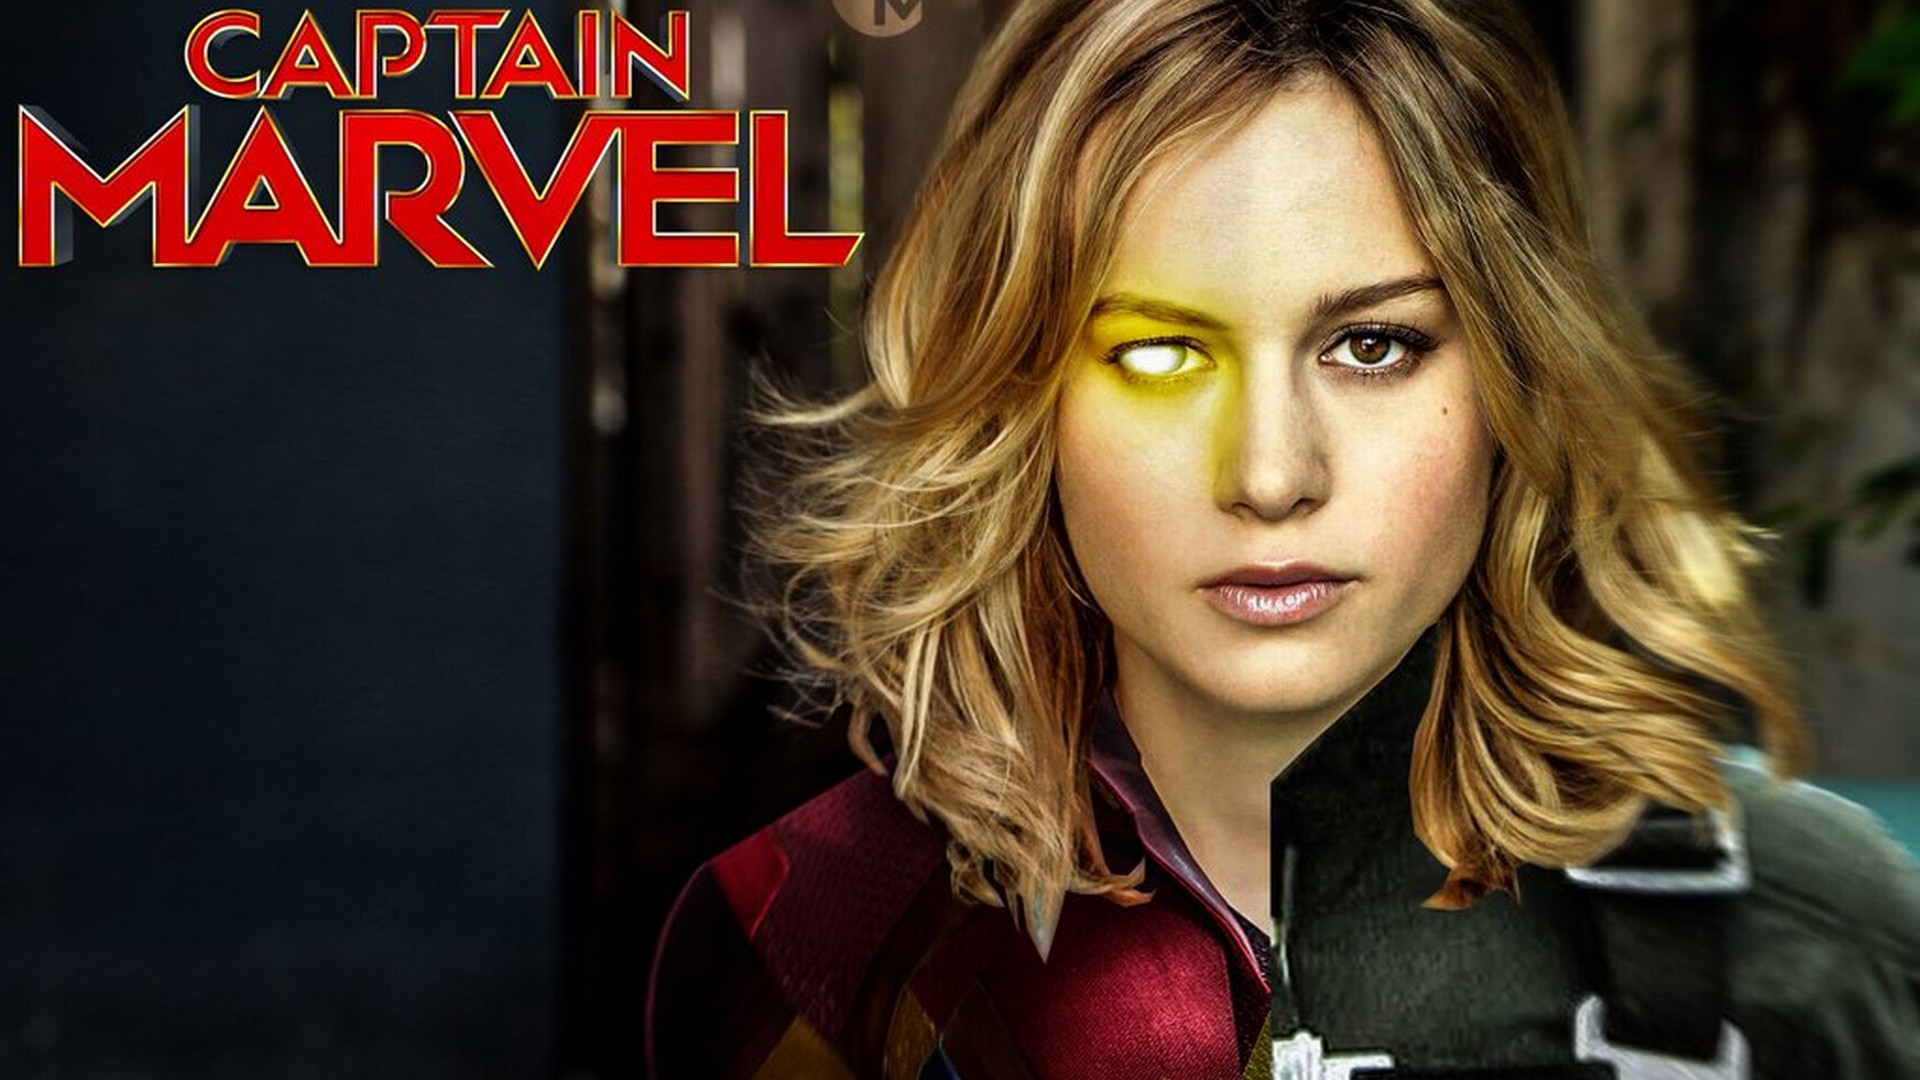 Captain Marvel Poster Wallpaper with high-resolution 1920x1080 pixel. You can use this poster wallpaper for your Desktop Computers, Mac Screensavers, Windows Backgrounds, iPhone Wallpapers, Tablet or Android Lock screen and another Mobile device